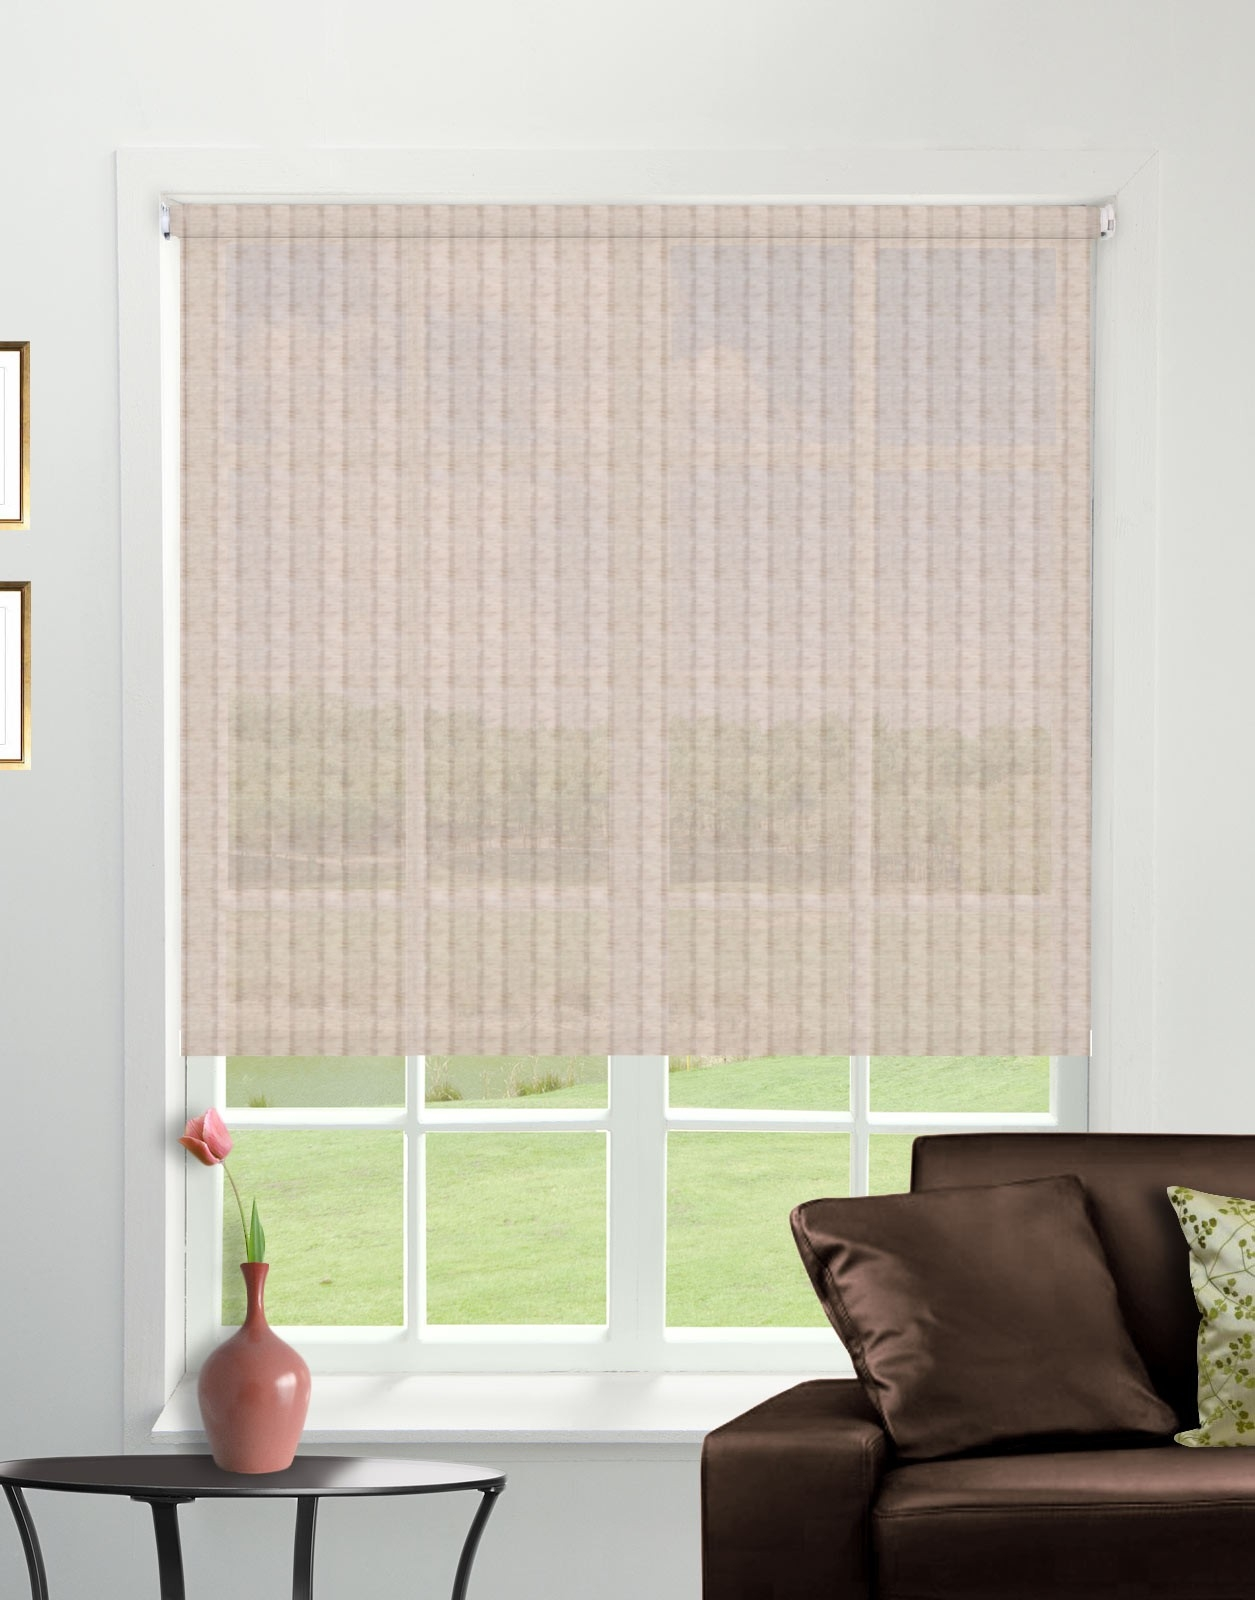 Bali Linen Roller Blind Direct Order Blinds Uk Pertaining To Linen Roller Blind (Image 3 of 15)